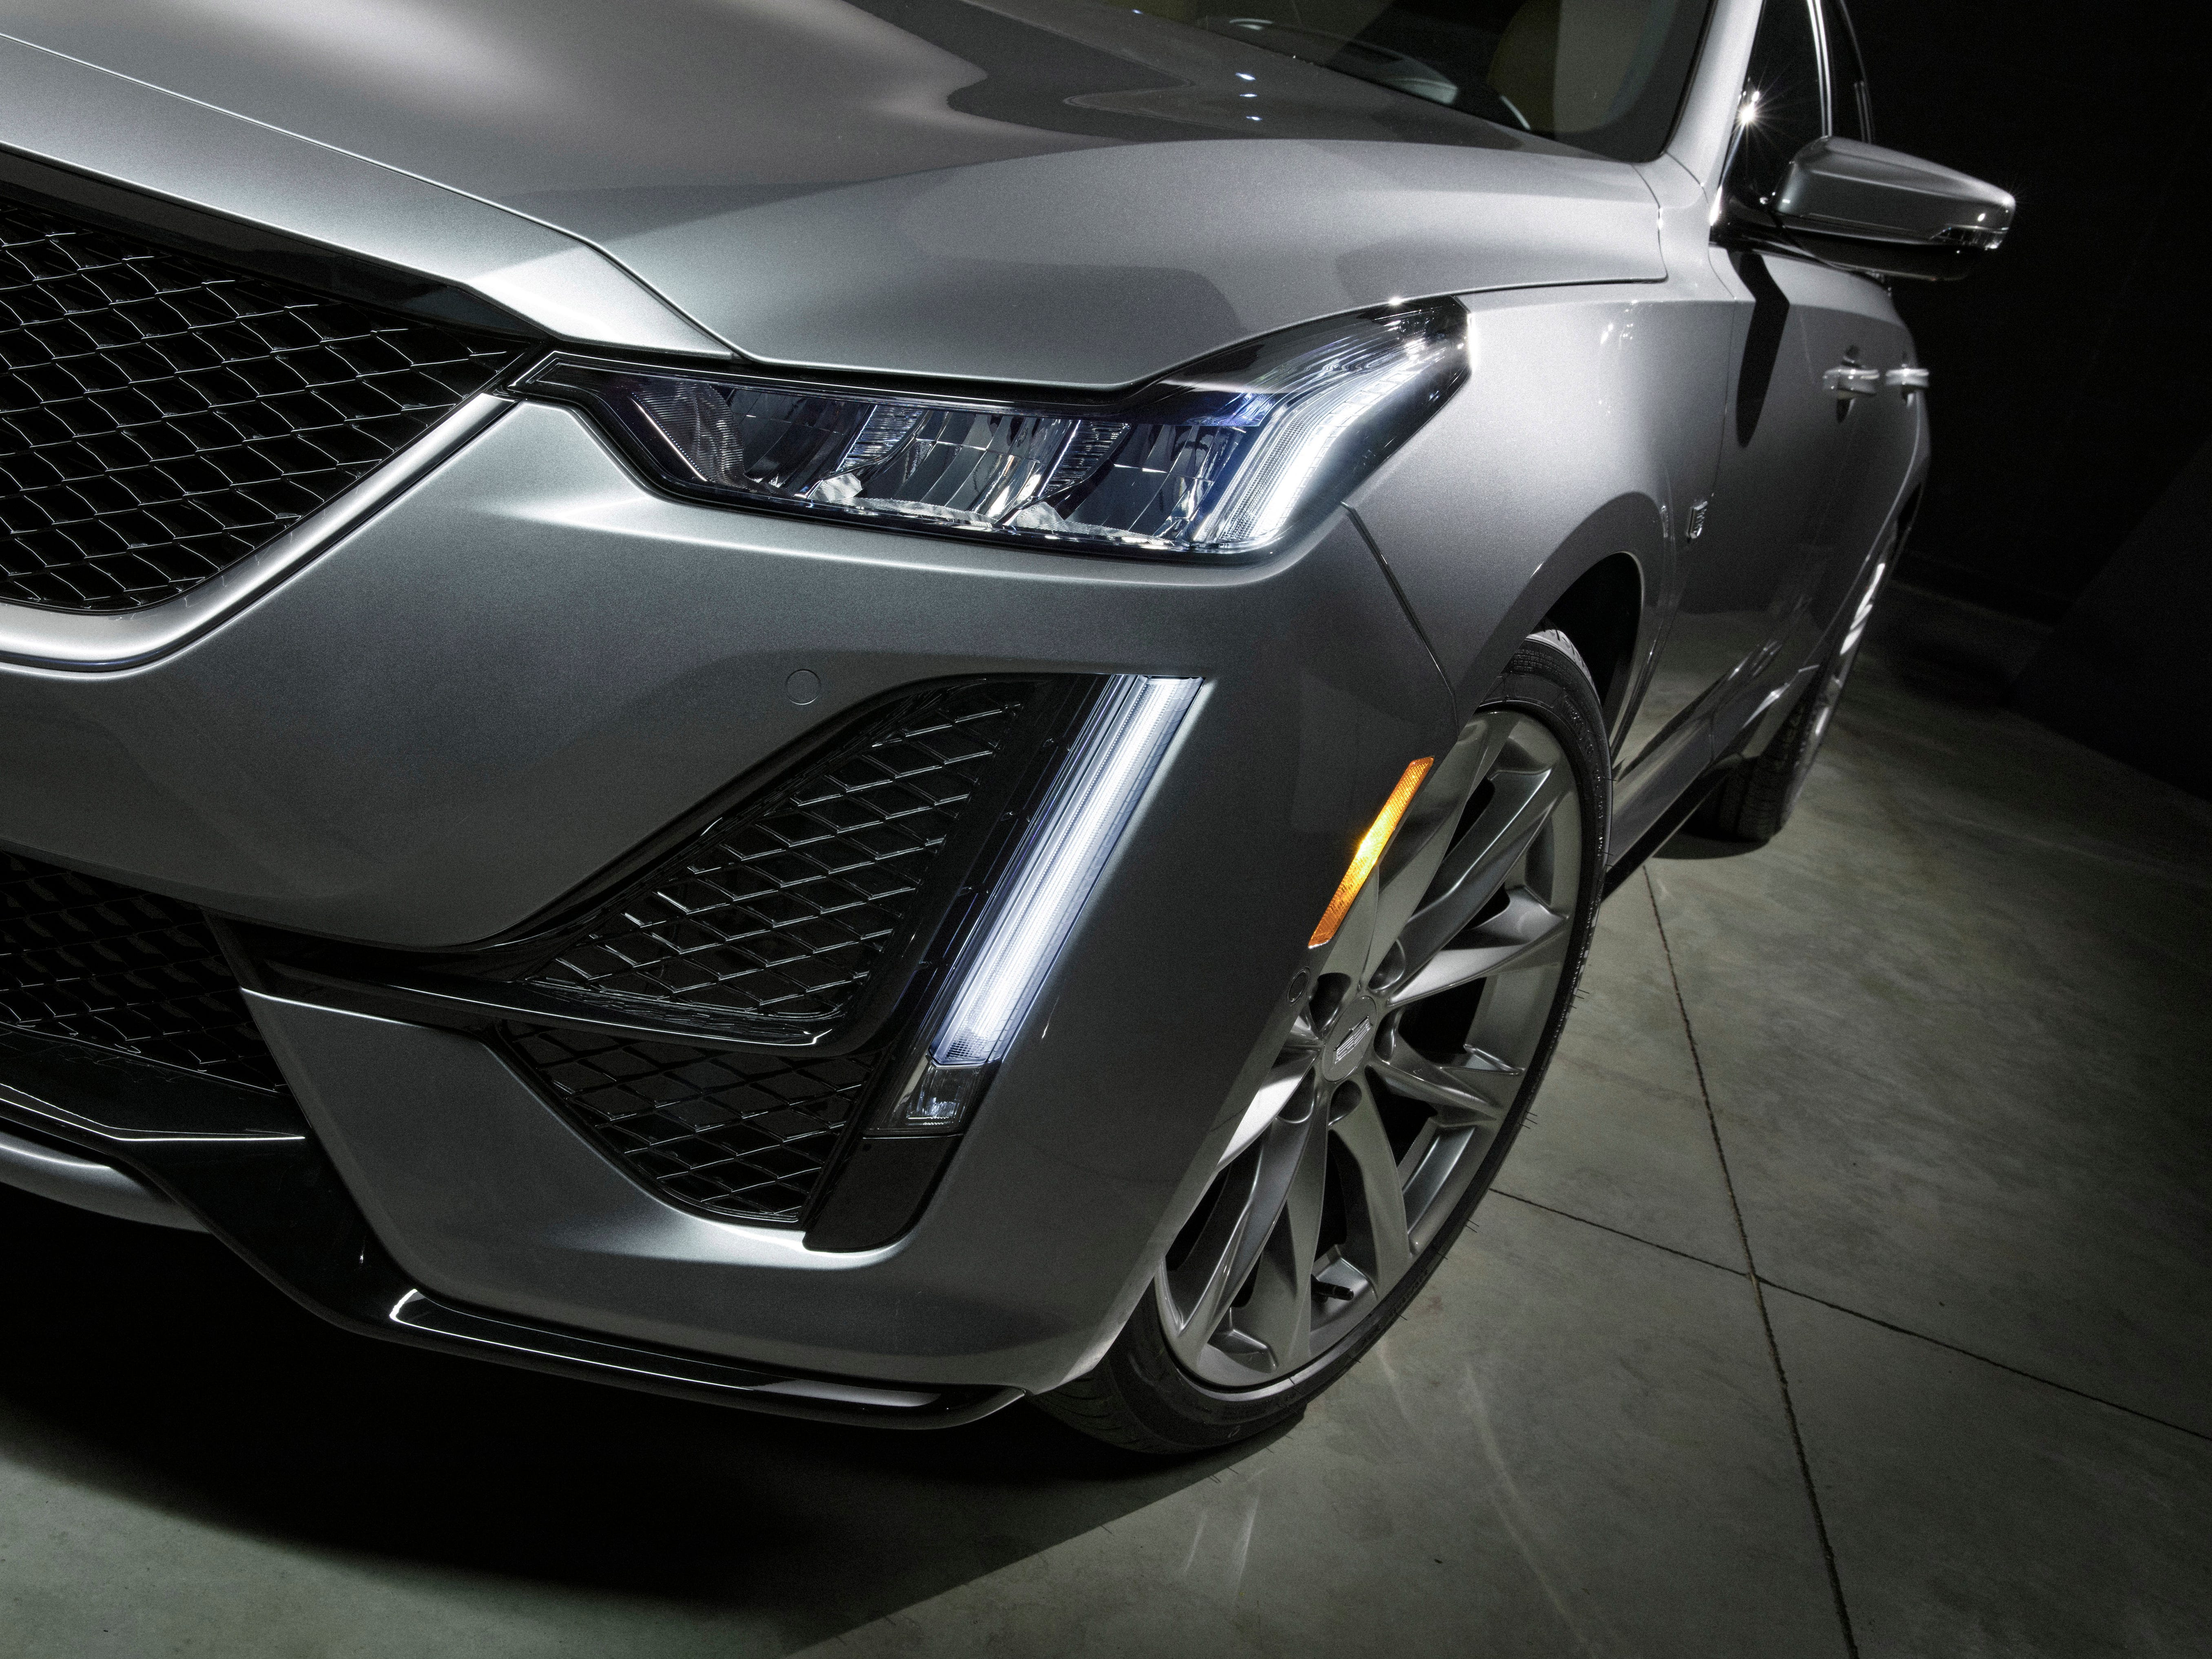 The 2020 Cadillac CT5 is evolved from the CTS sedan which ran three generations before the name change to CT5. The CTS's distinct, vertical LED light signature will carry over to the CT5.